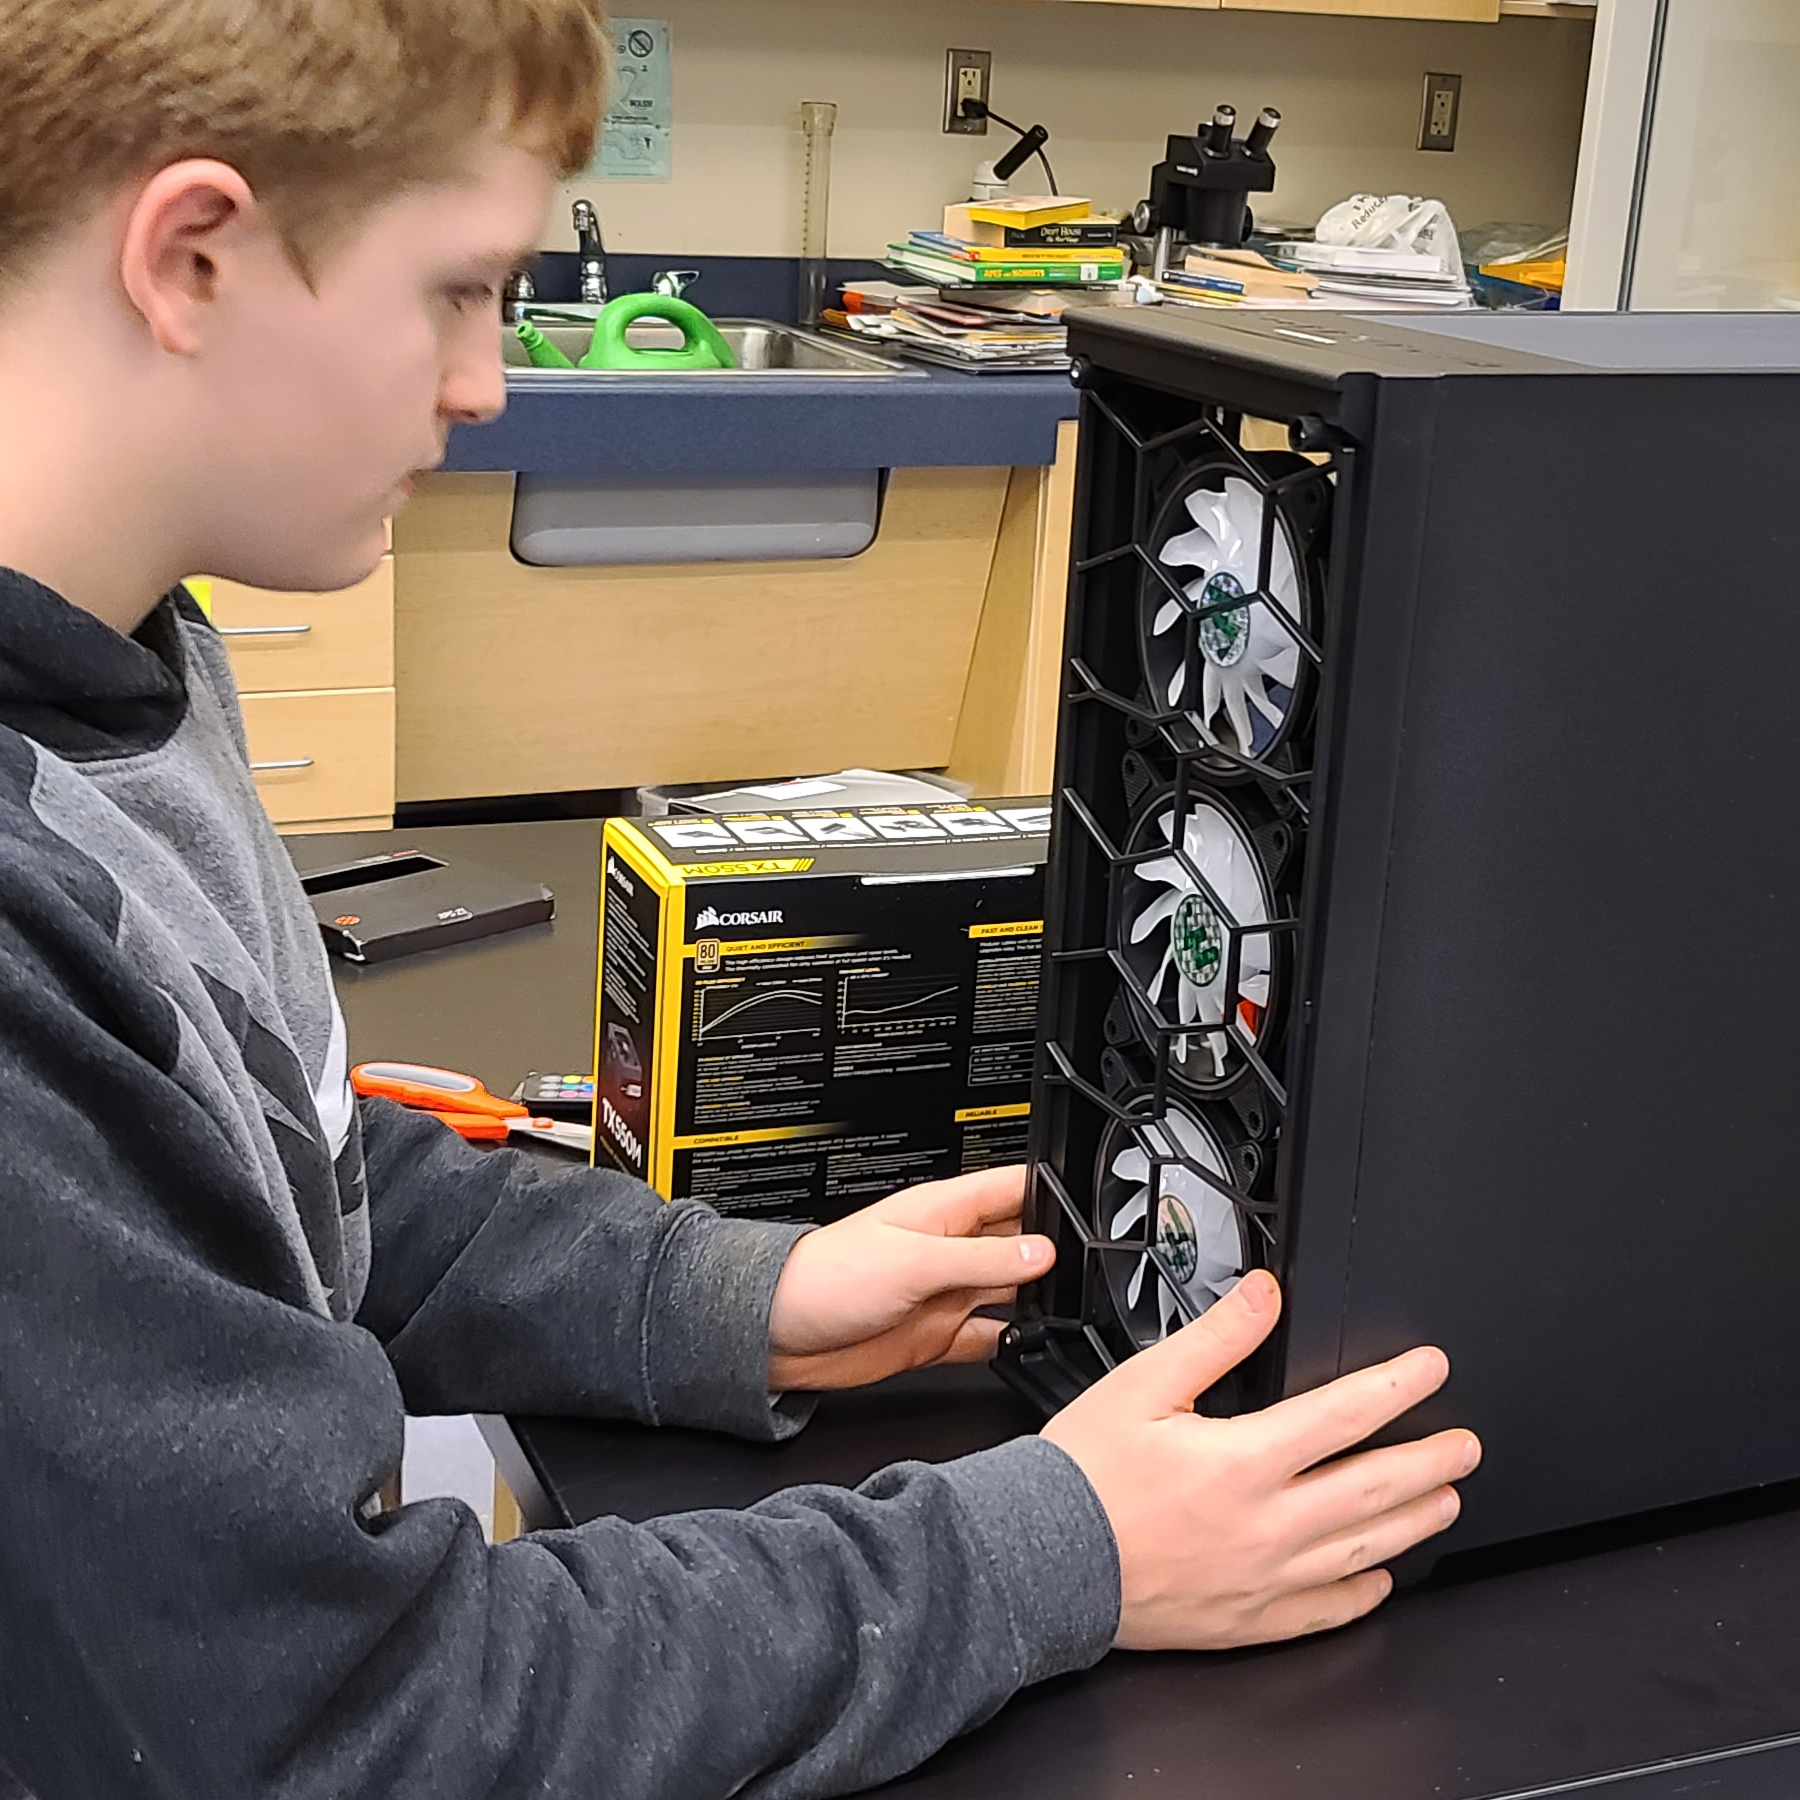 Student Building a Computer